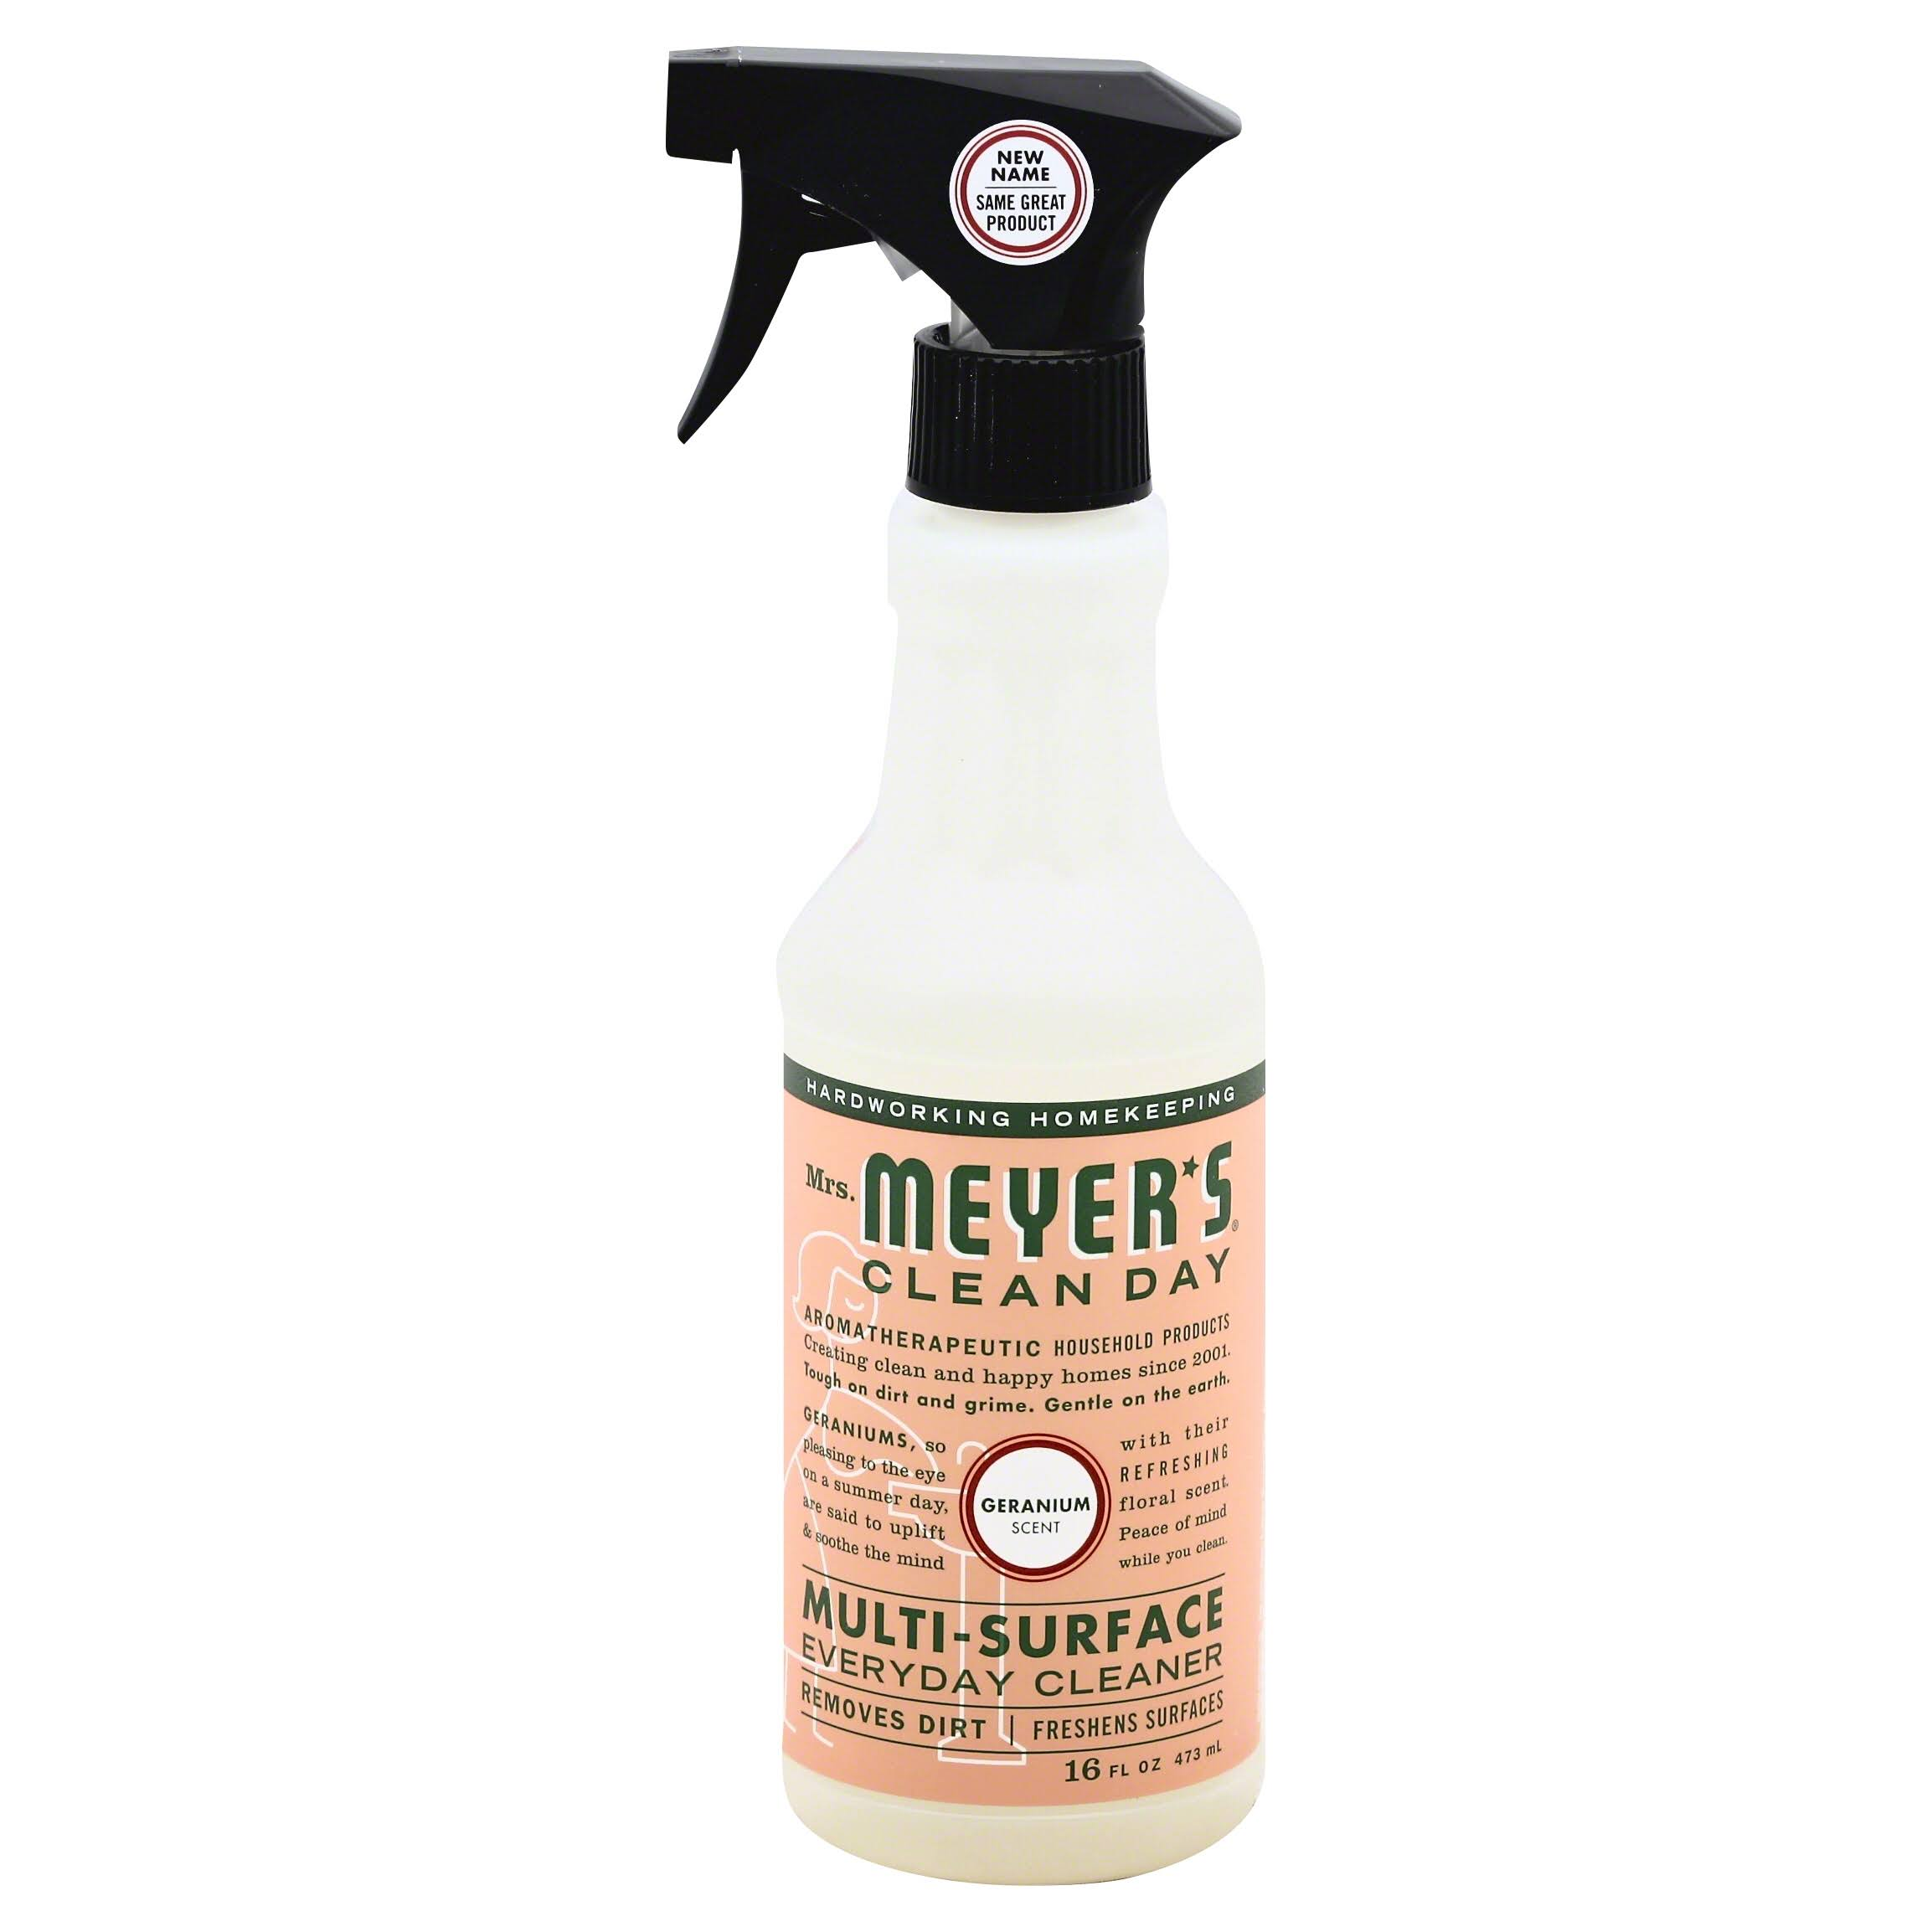 Mrs. Meyers Clean Day Multi-Surface Cleaner - Geranium, 16oz